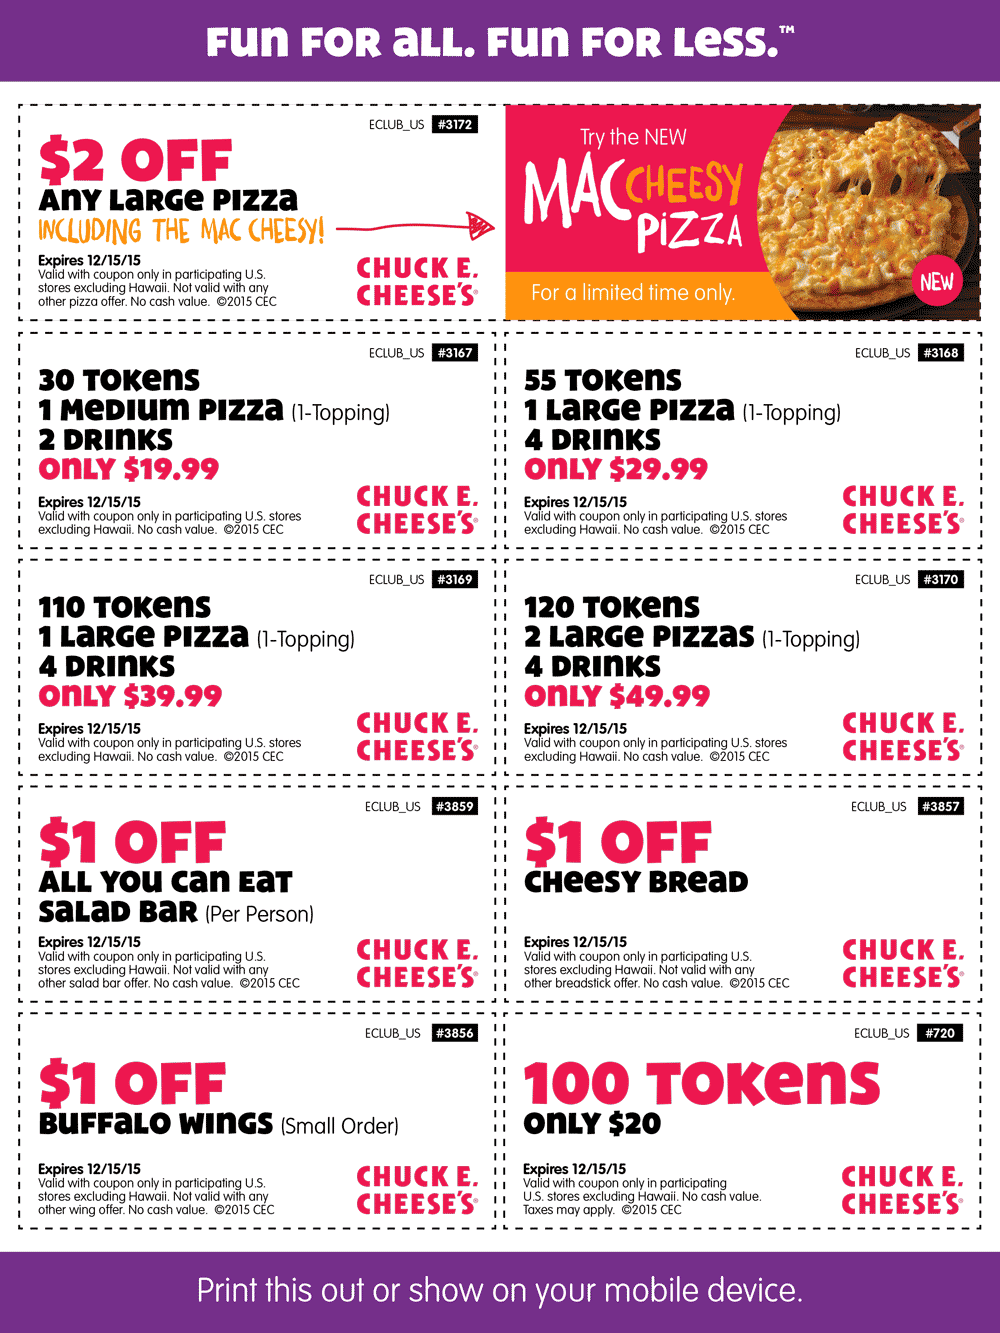 Chuck E. Cheese Coupon December 2016 30 tokens + pizza + drinks or 100 tokens for $20 & more at Chuck E. Cheese